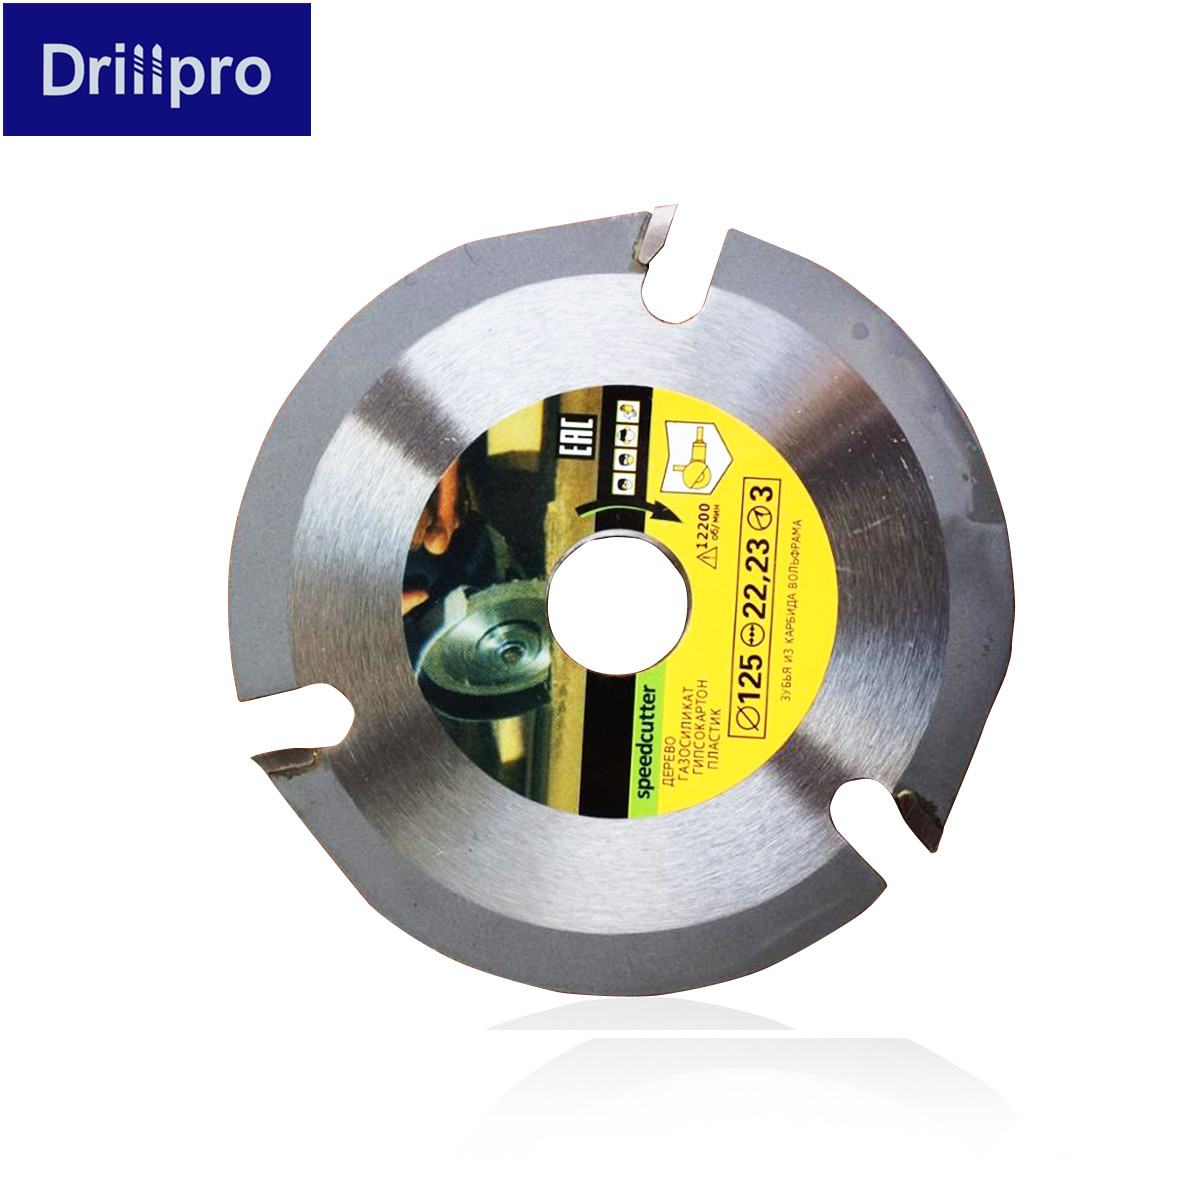 125mm 3 T Multitool Grinder Saw Disc Circular Saw Blade Carbide Tipped Wood Cutting Disc Carving Disc Tool Multitool Blades